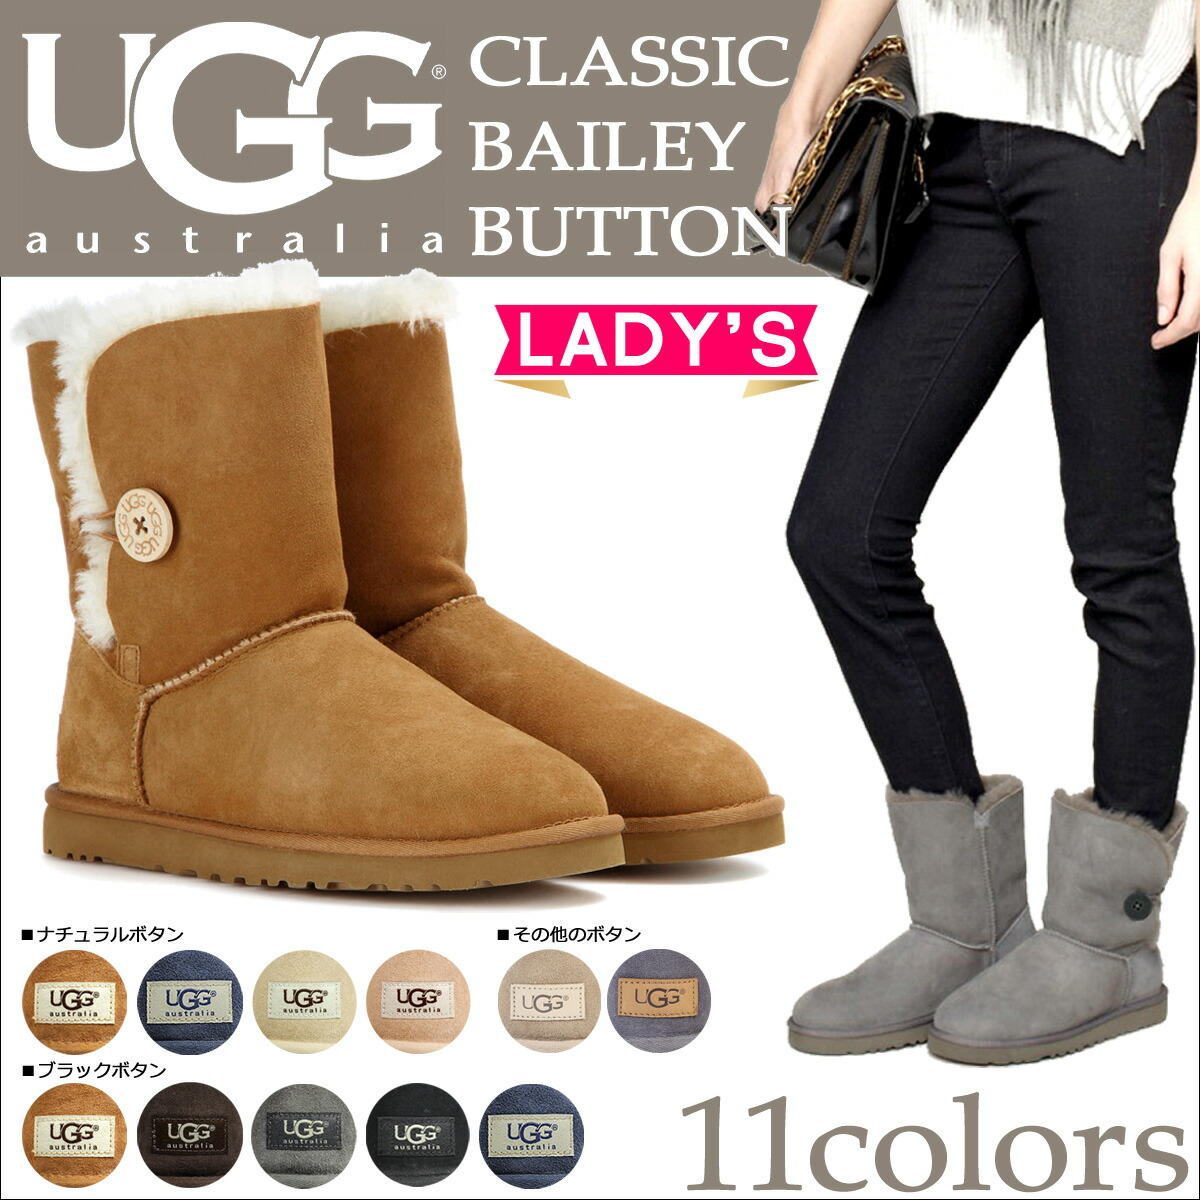 ����̵�� UGG ���� ������� �٥��꡼�ܥ��� �ࡼ�ȥ�֡��� [ 9���顼 ] 3352 WOMENS MINI BAILEY BUTTON ��ǥ�����